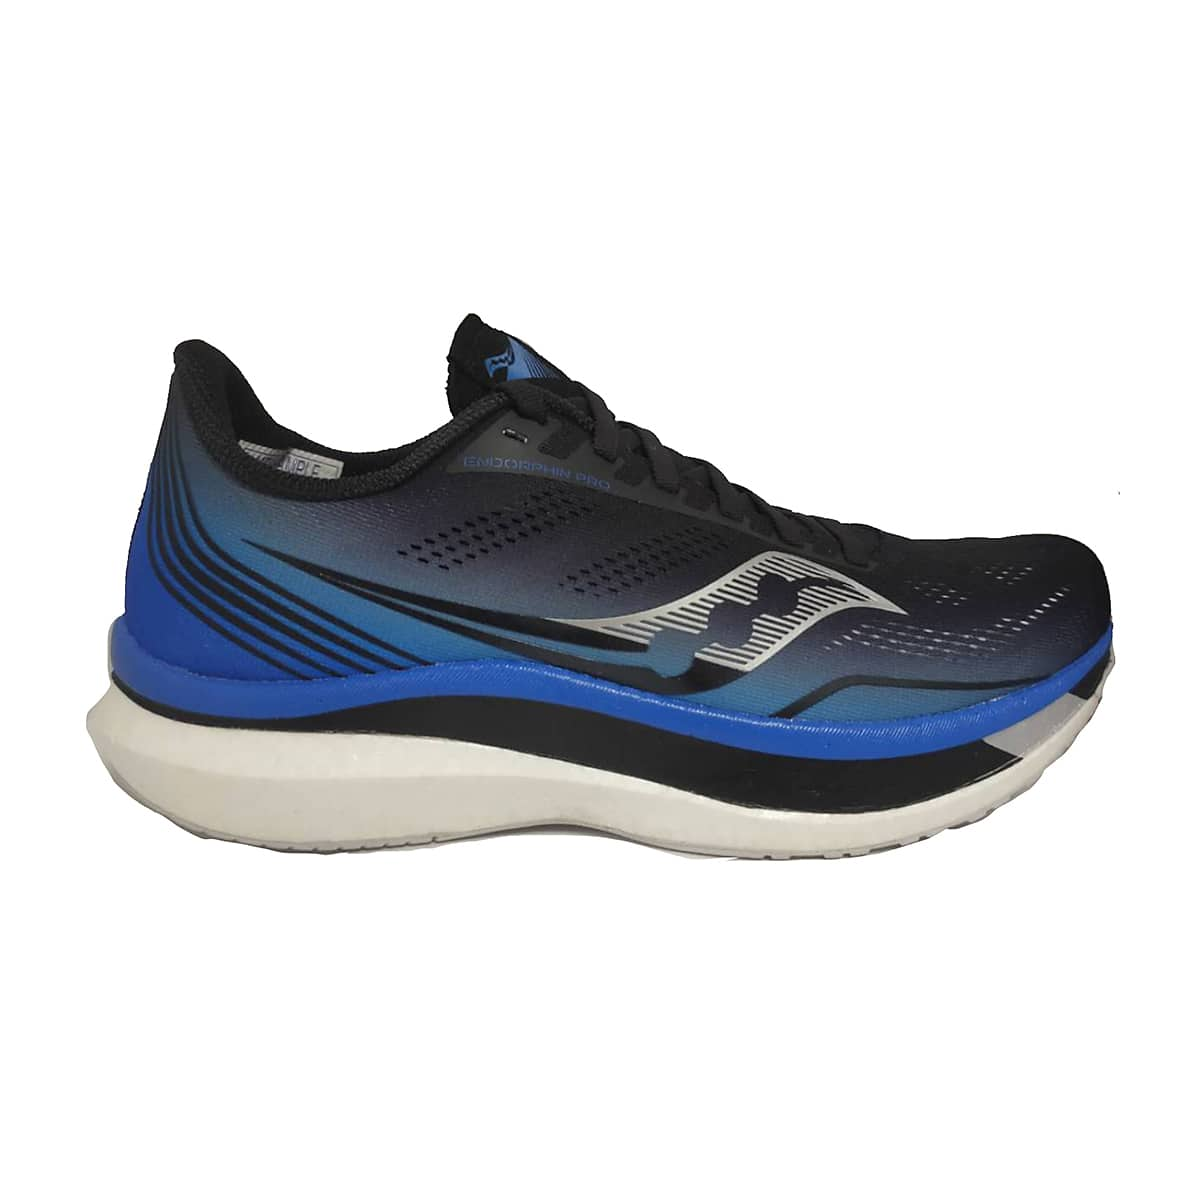 Men's & Women's Saucony Running Shoes: Endorphin Pro or VIZIPRO Speed $109.98 + Free Shipping